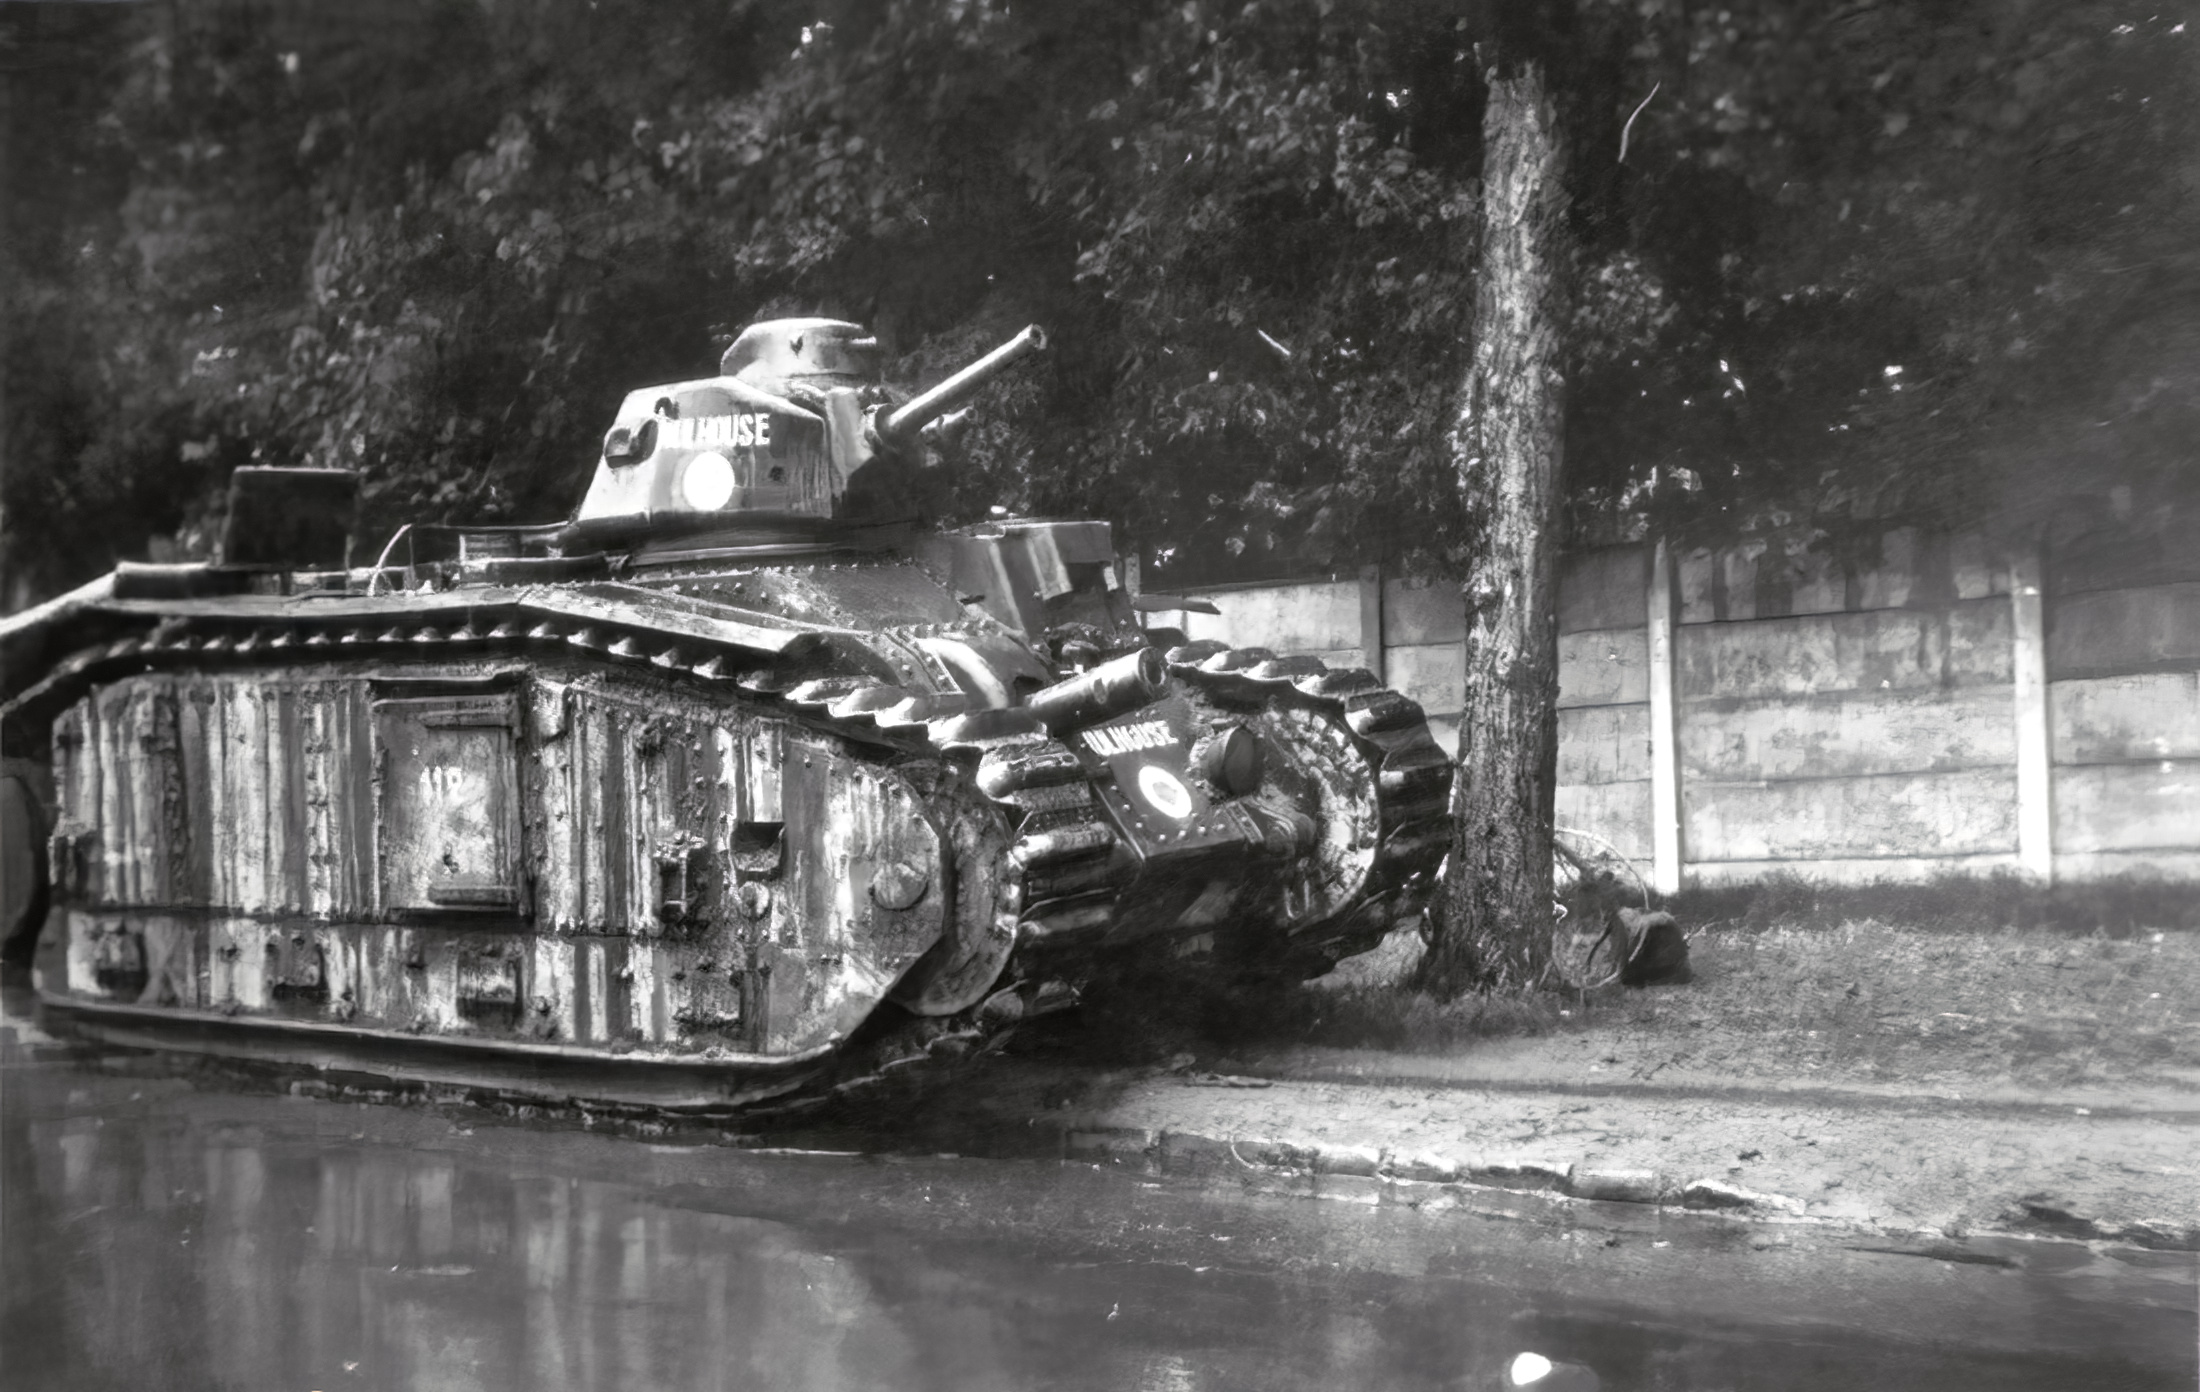 French Army Renault Char B1 named Mulhouse captured during the battle of France 1940 ebay 01